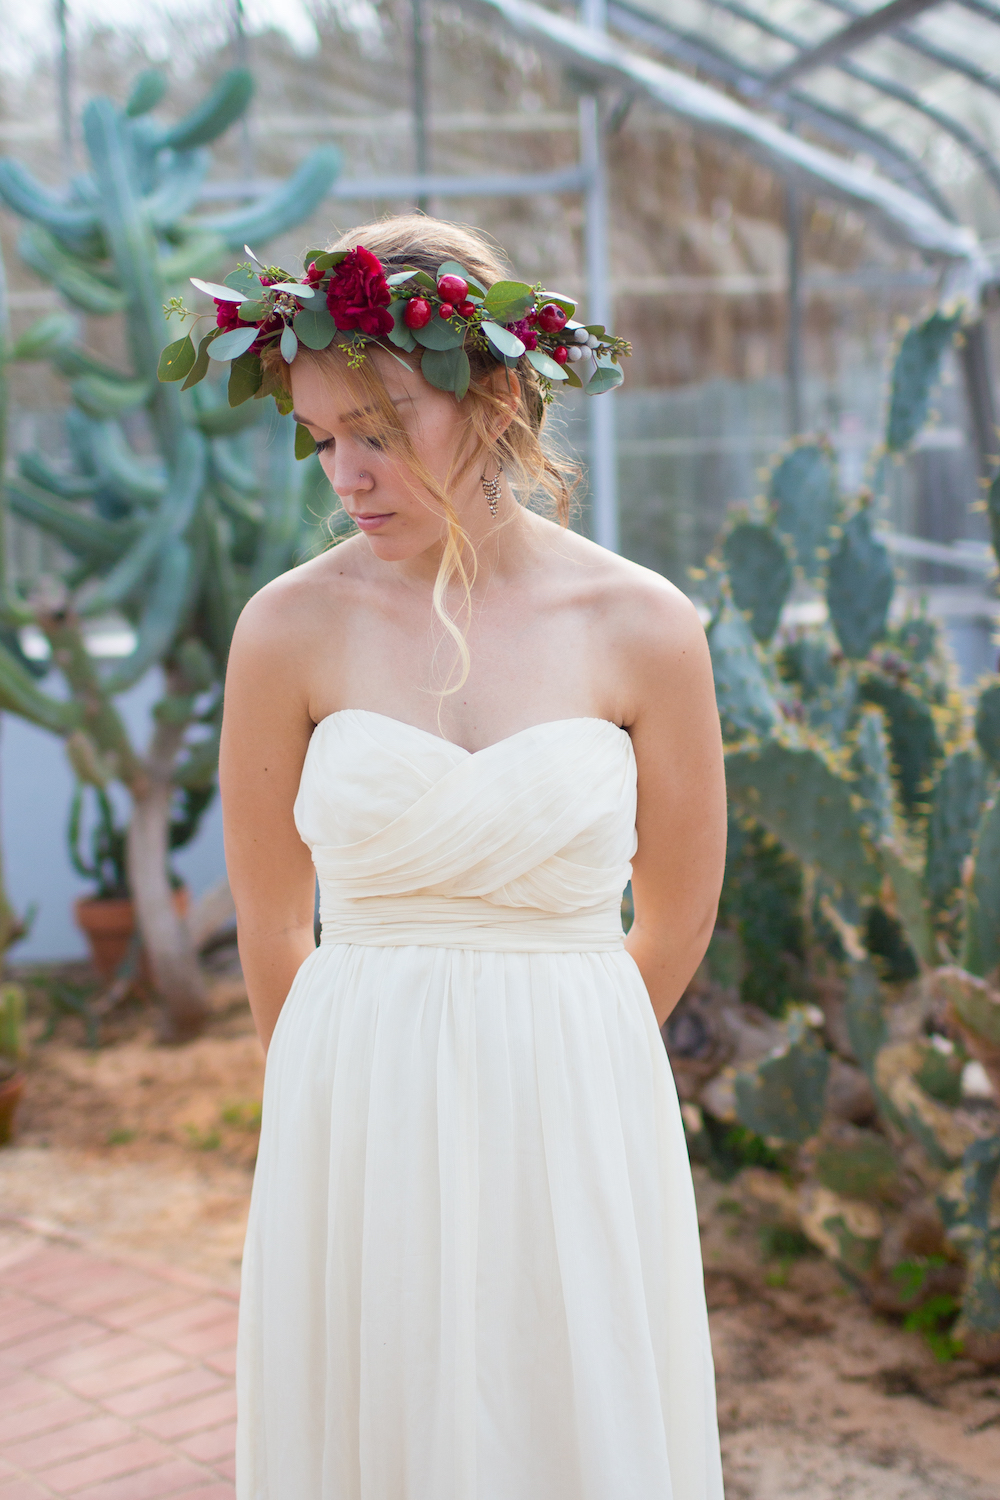 A romantic bridal inspiration styled shoot with a handmade DIY floral crown + a BHLDN bridal gown / photo by Spark Photography